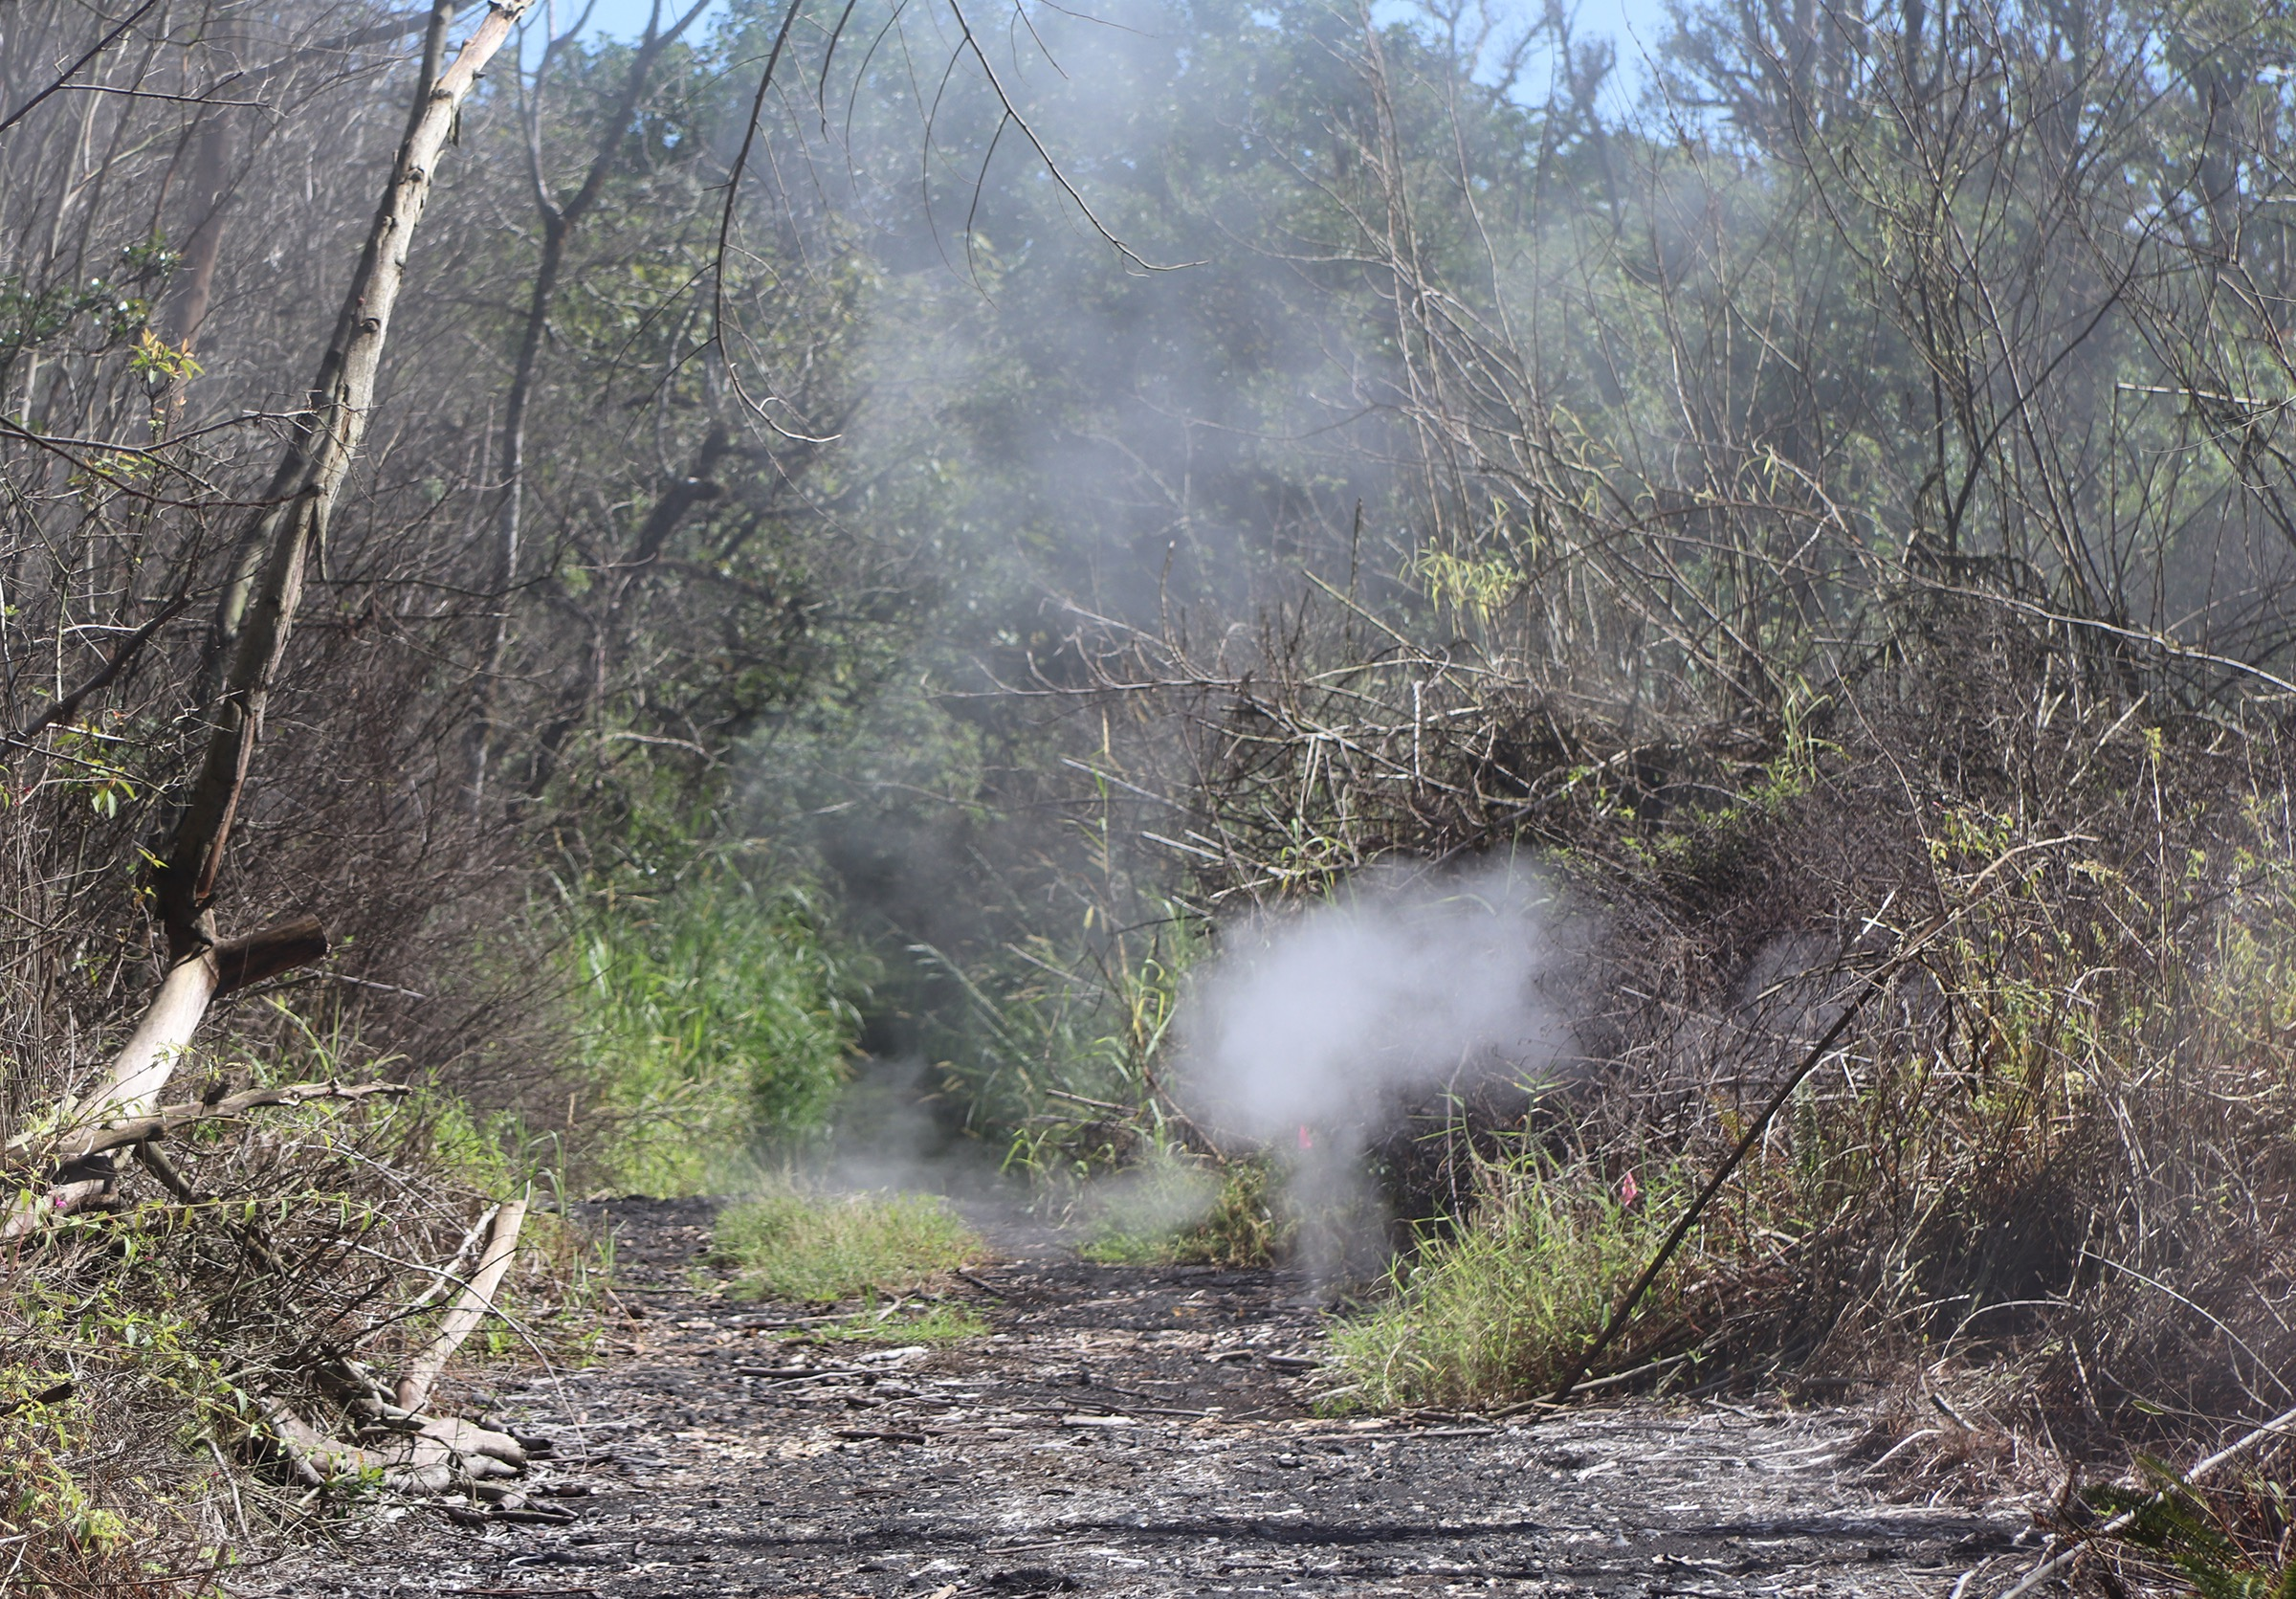 Heat and Gases Linger on Kīlauea Volcano's Lower East Rift Zone